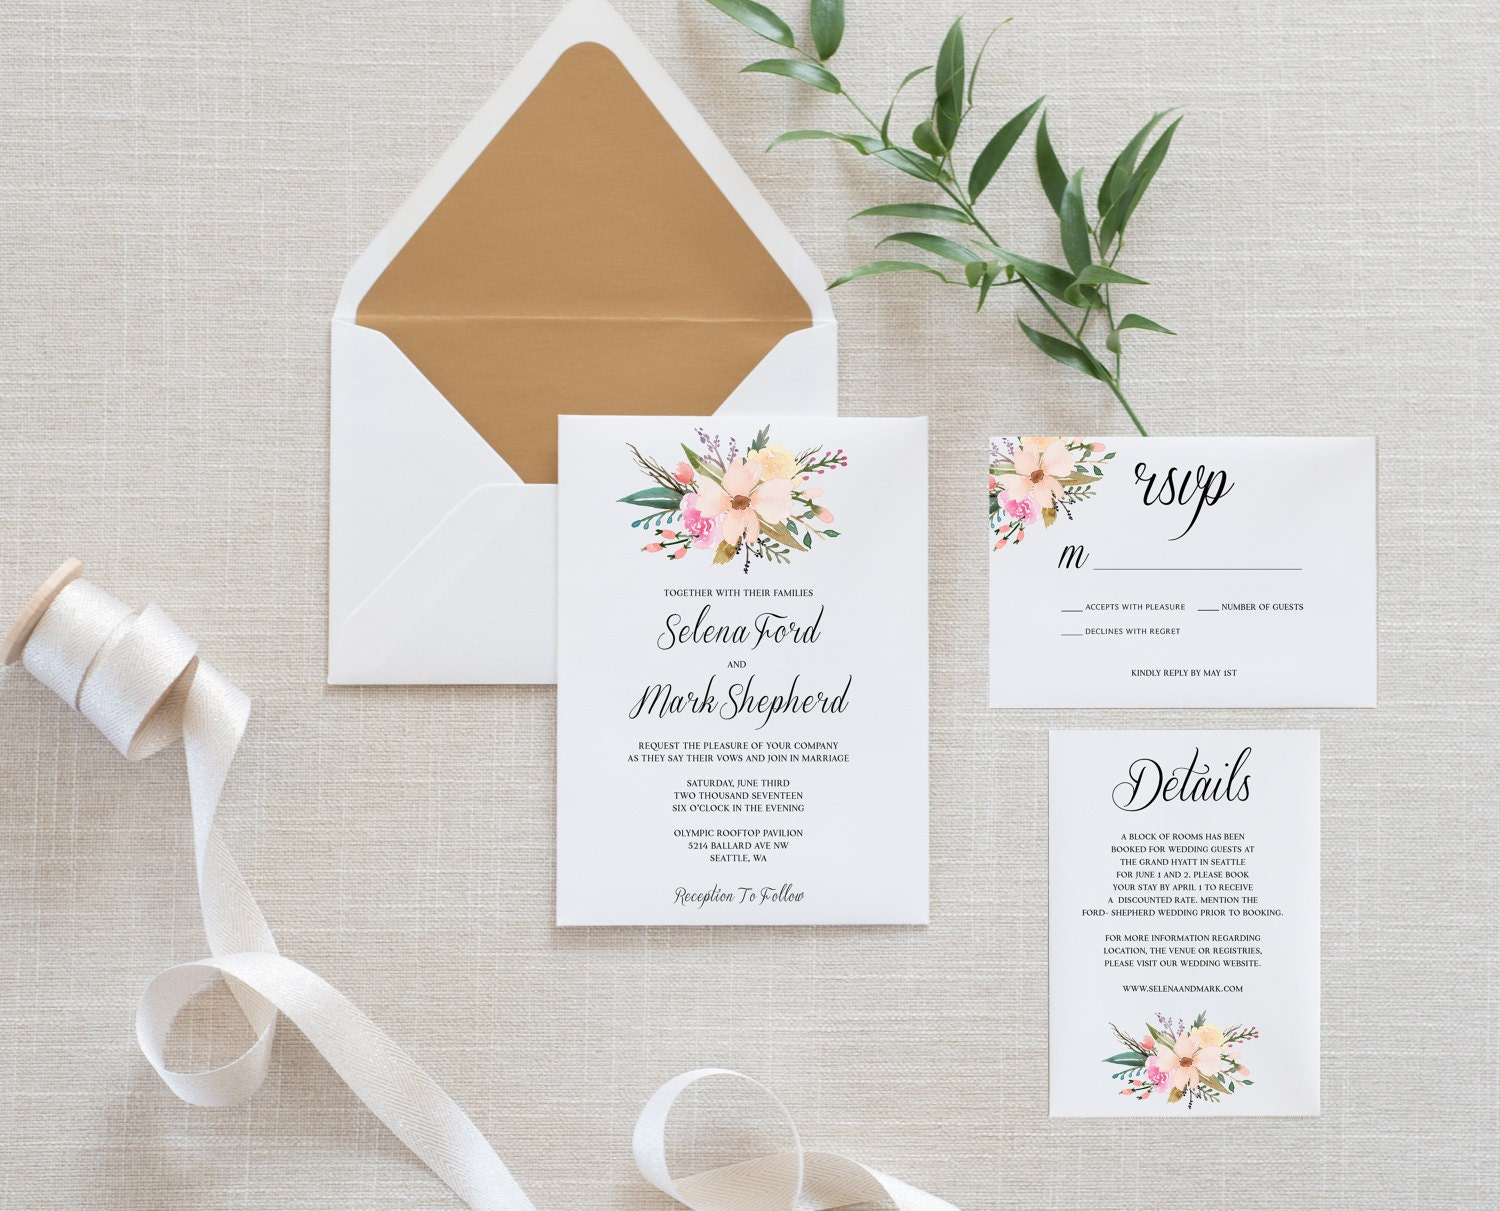 Ready To Print Wedding Invitations: Printable Wedding Invitation Set Minimalist Simple